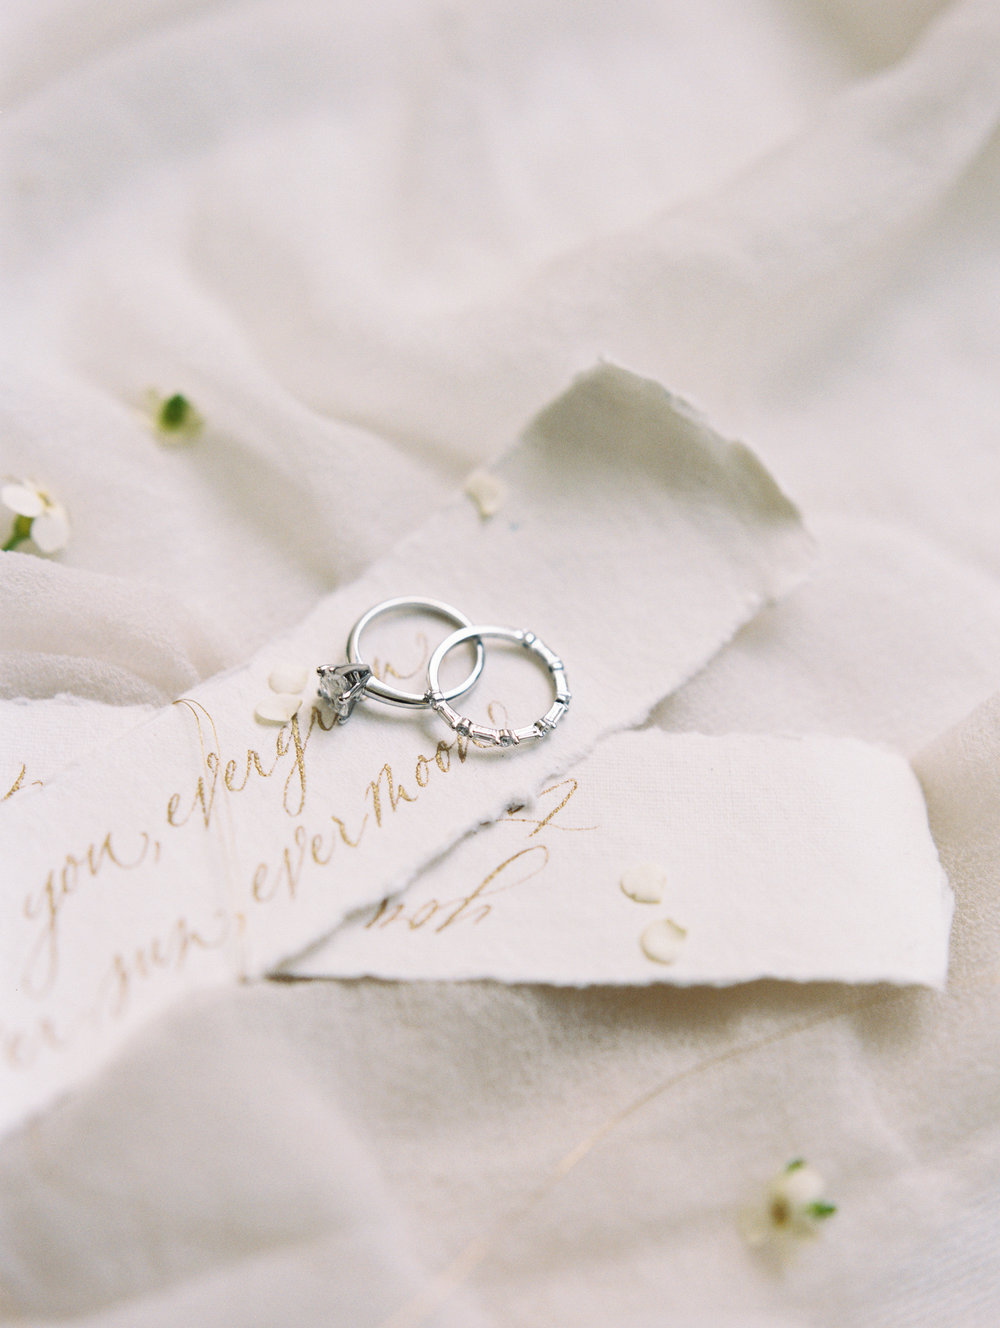 Photography: Lisa Ziesing with Abby Jiu Photography | Planning & Styling: Lauryn Prattes Styling and Events | Handmade Paper & Calligraphy: Spurlé Gul Studio